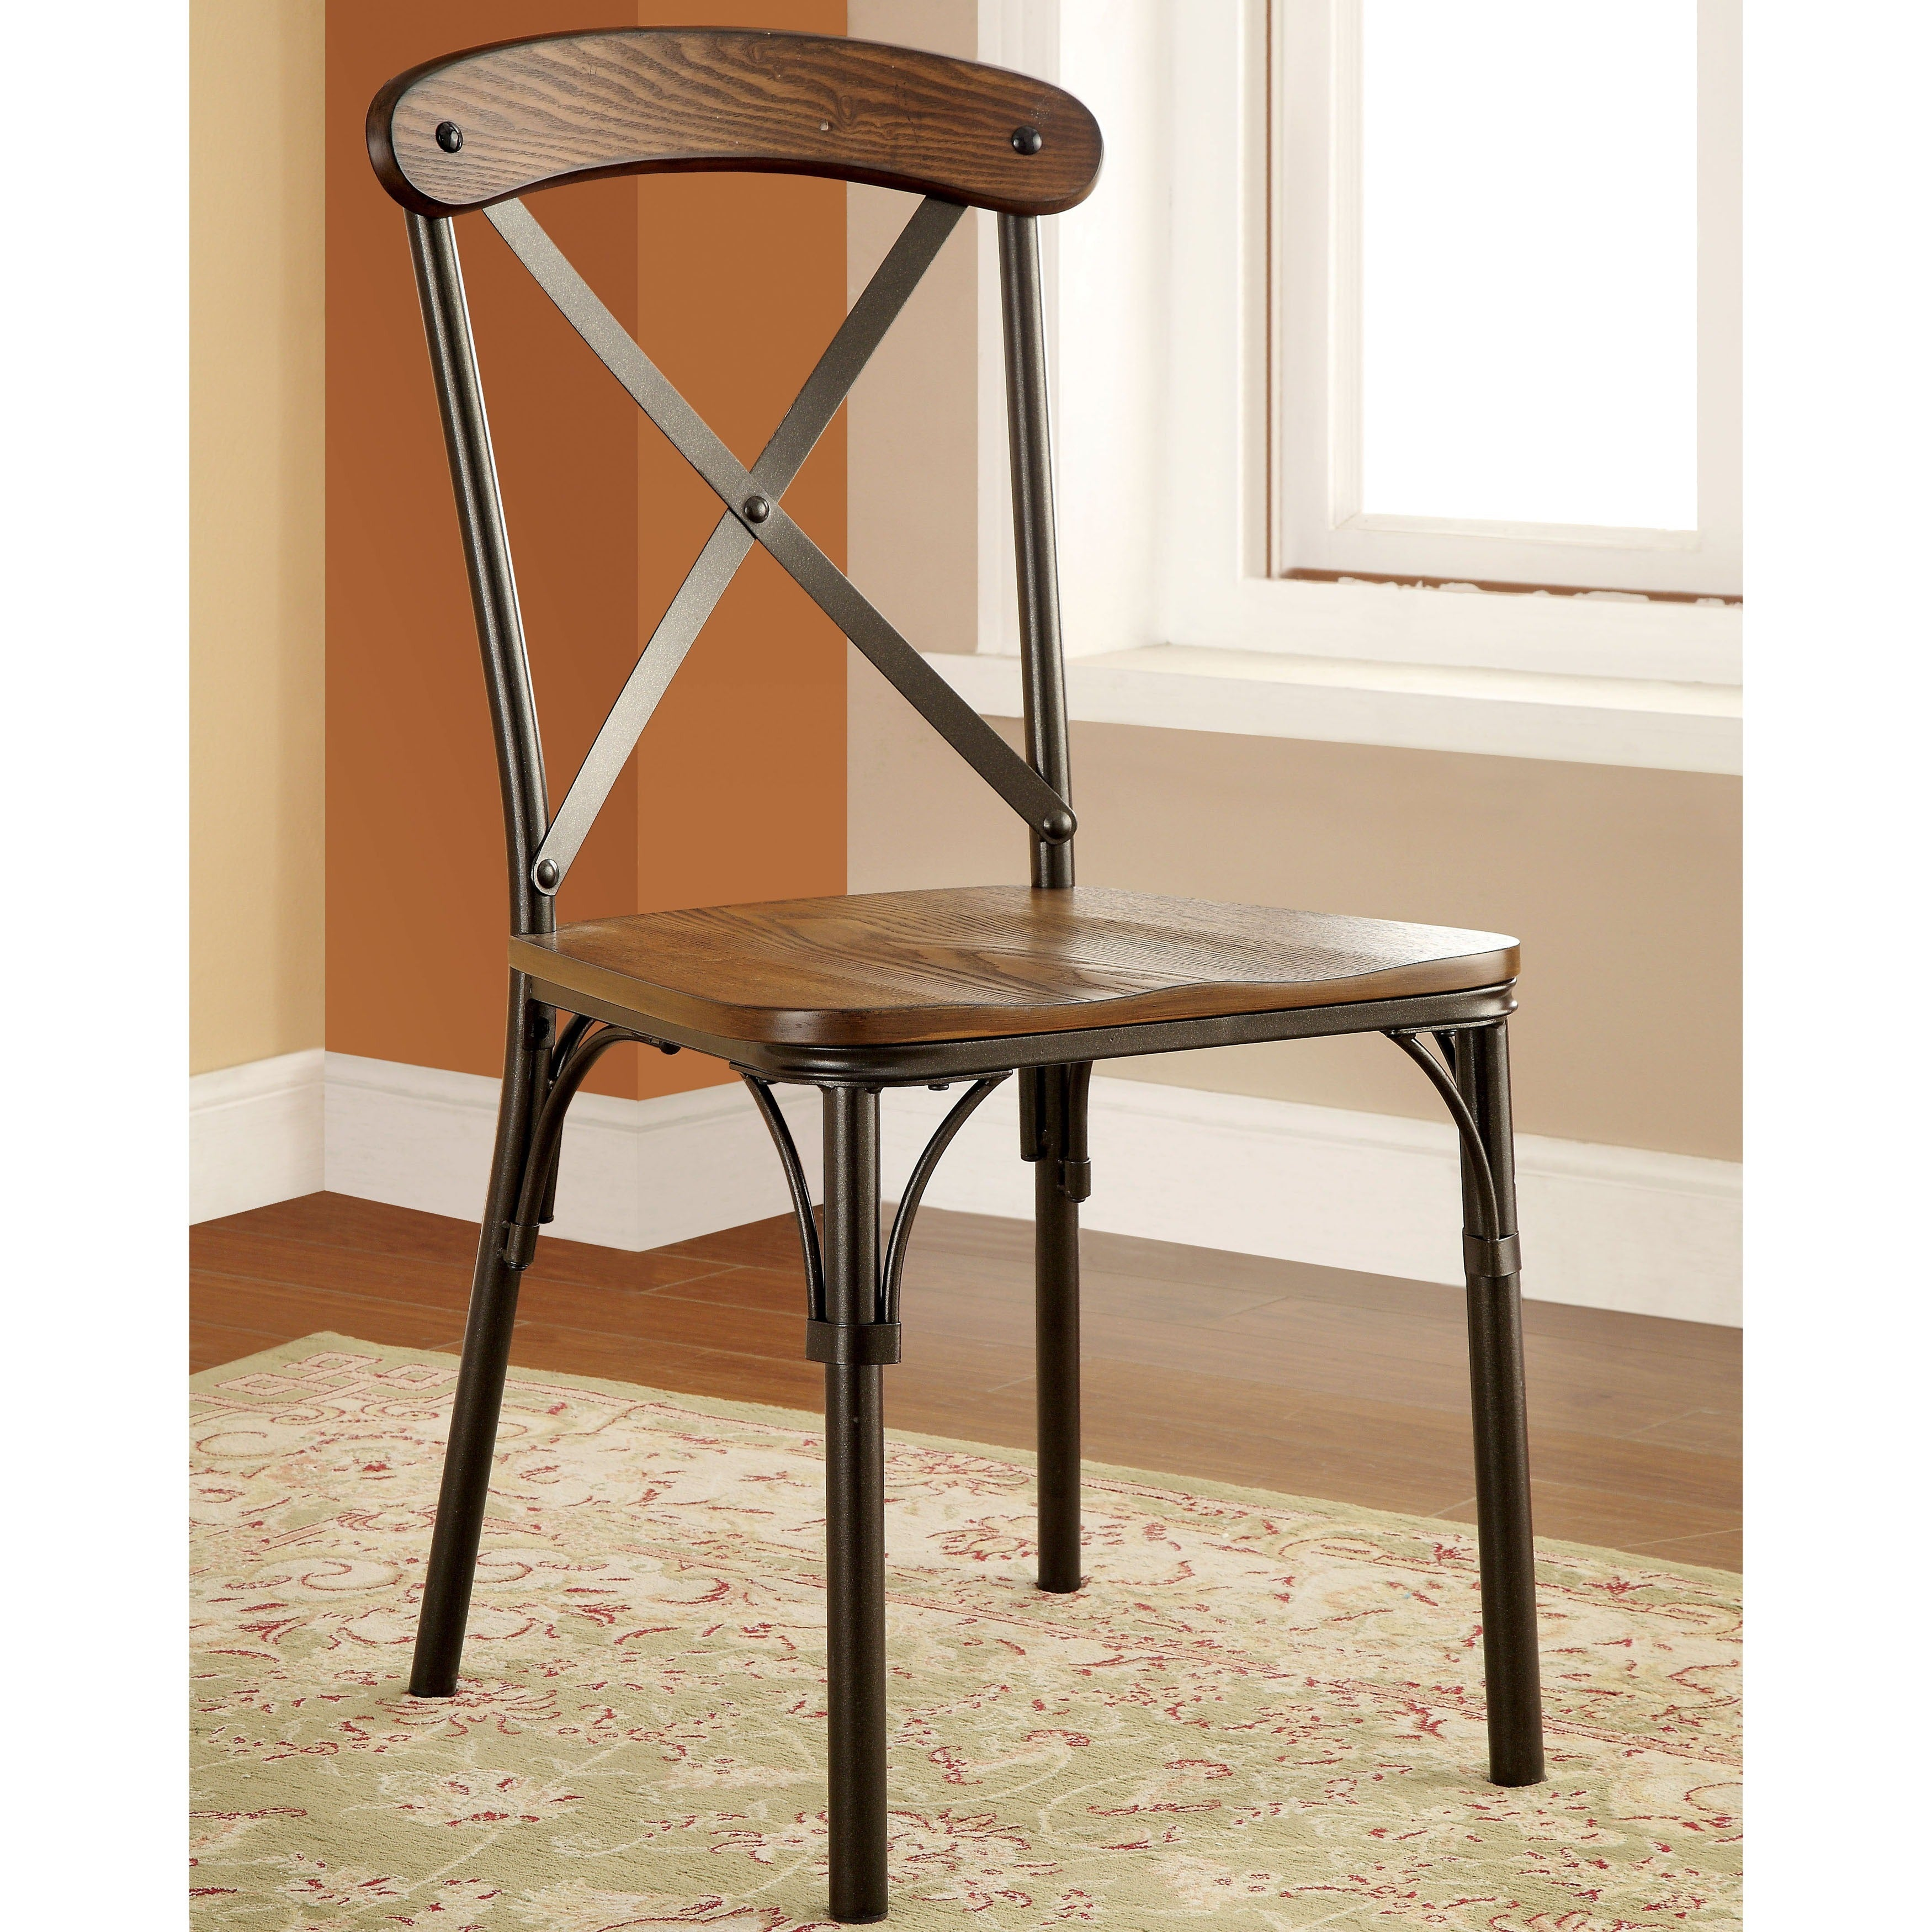 Shop furniture of america merrits industrial style dining chair set of 2 free shipping today overstock com 9964761